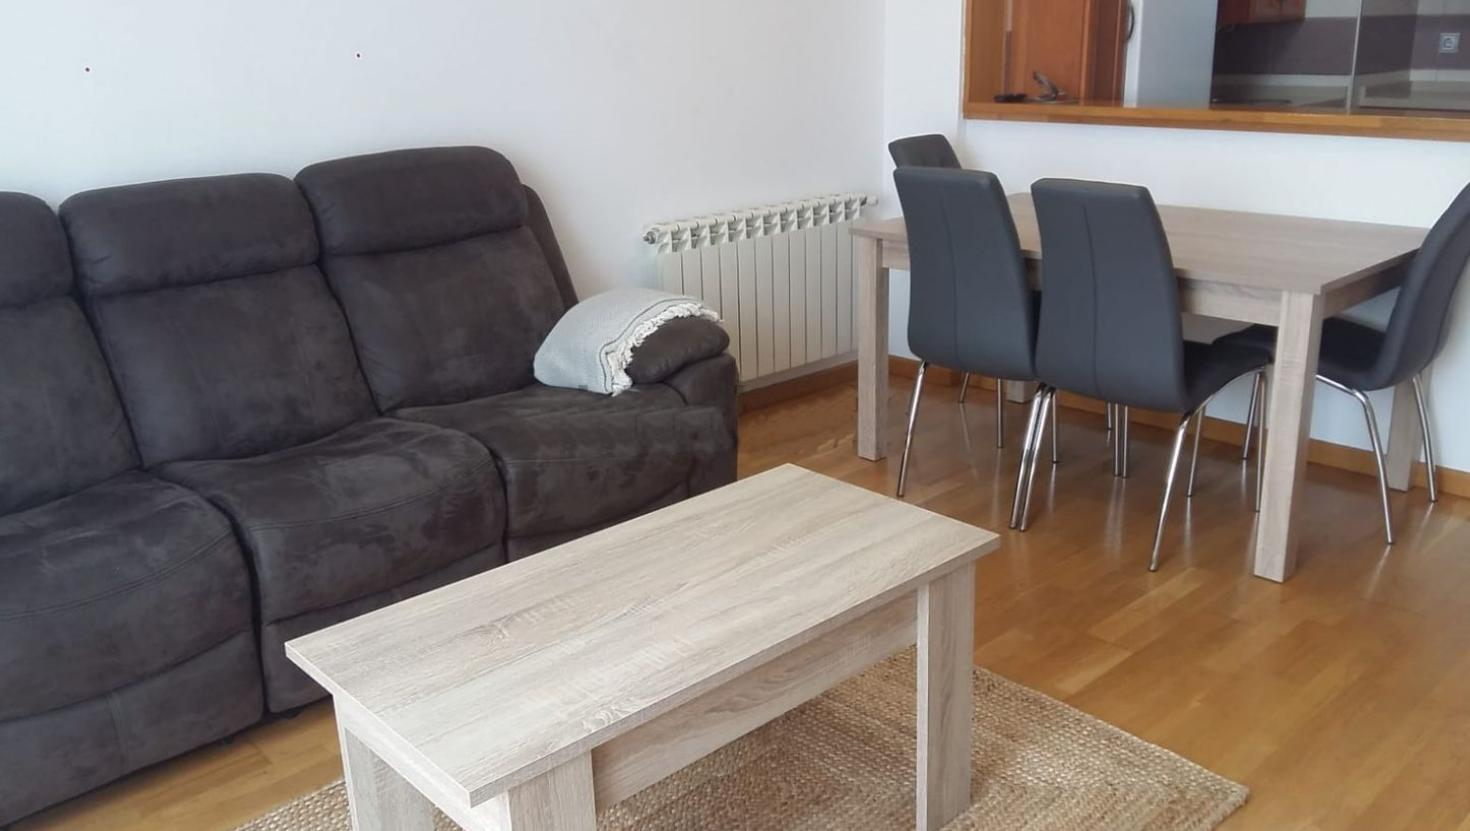 Apartment for rent in Campus de la Salud (Granada), 650 €/month (Season)